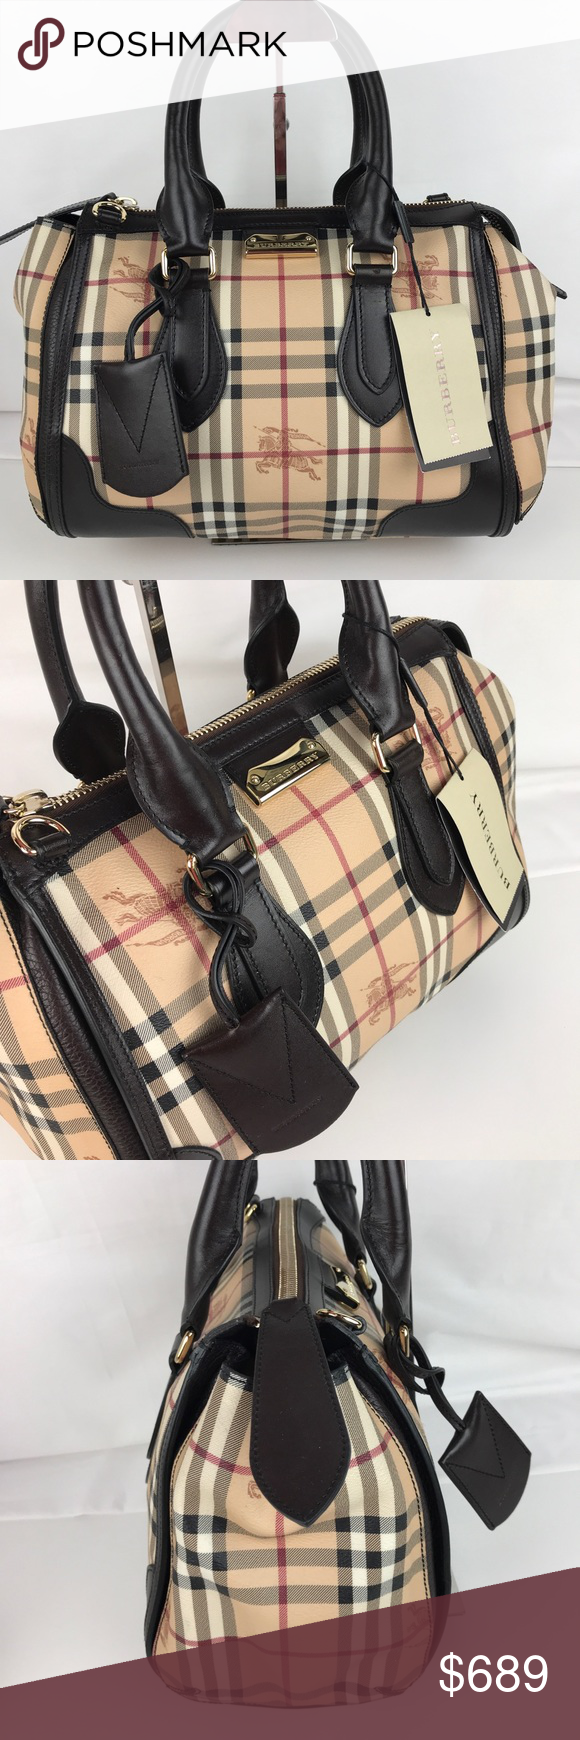 836ee651d7e1 Burberry Plaid Gladstone Chocolate Tote 3870759 Authentic Burberry Style  3870759. New